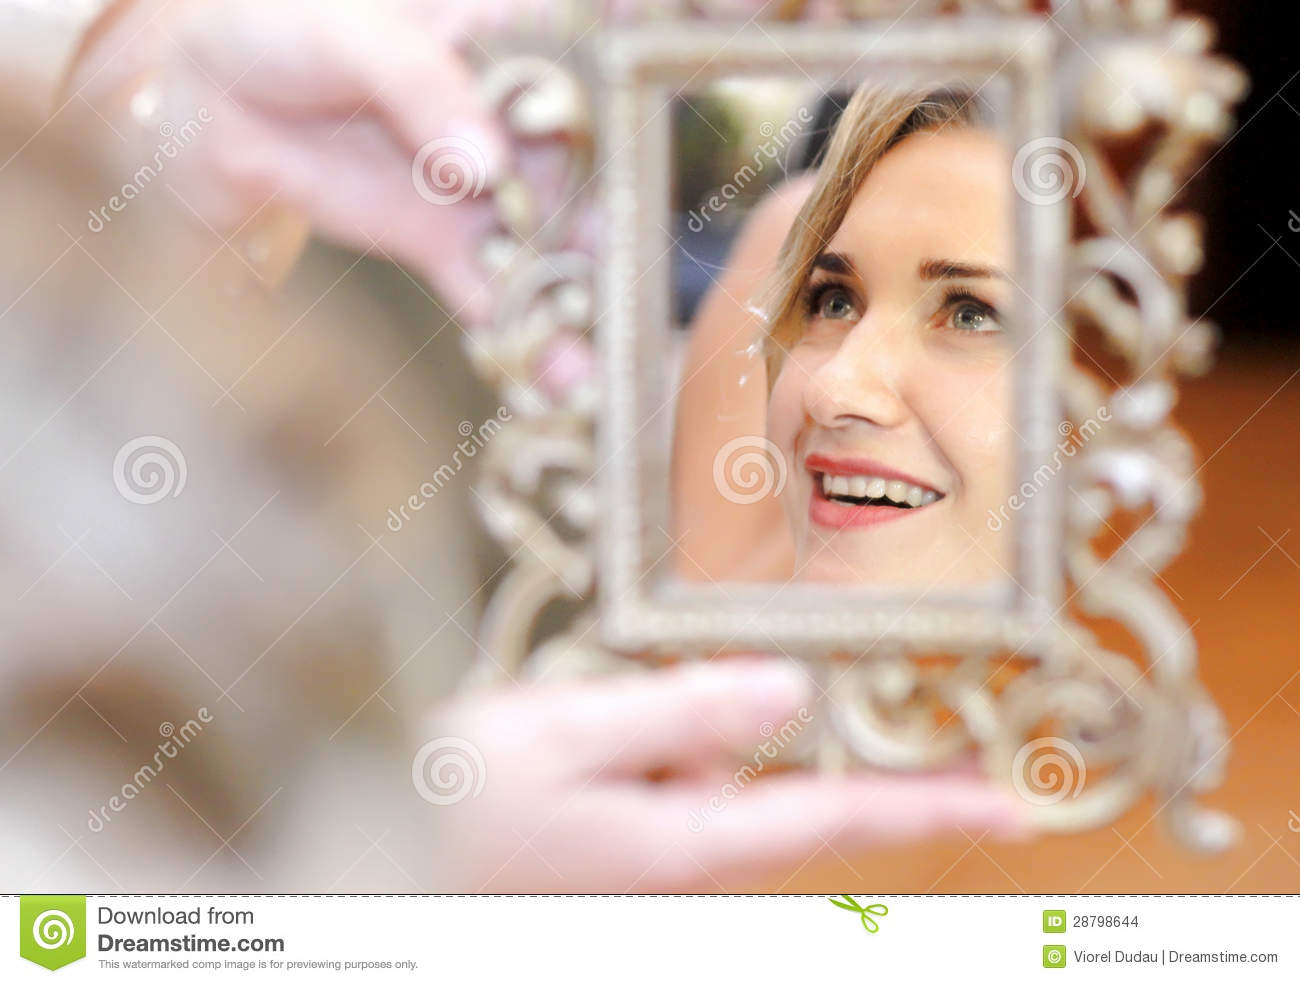 Mirror reflection stock photo image of reflecting mirror for Mirror reflection